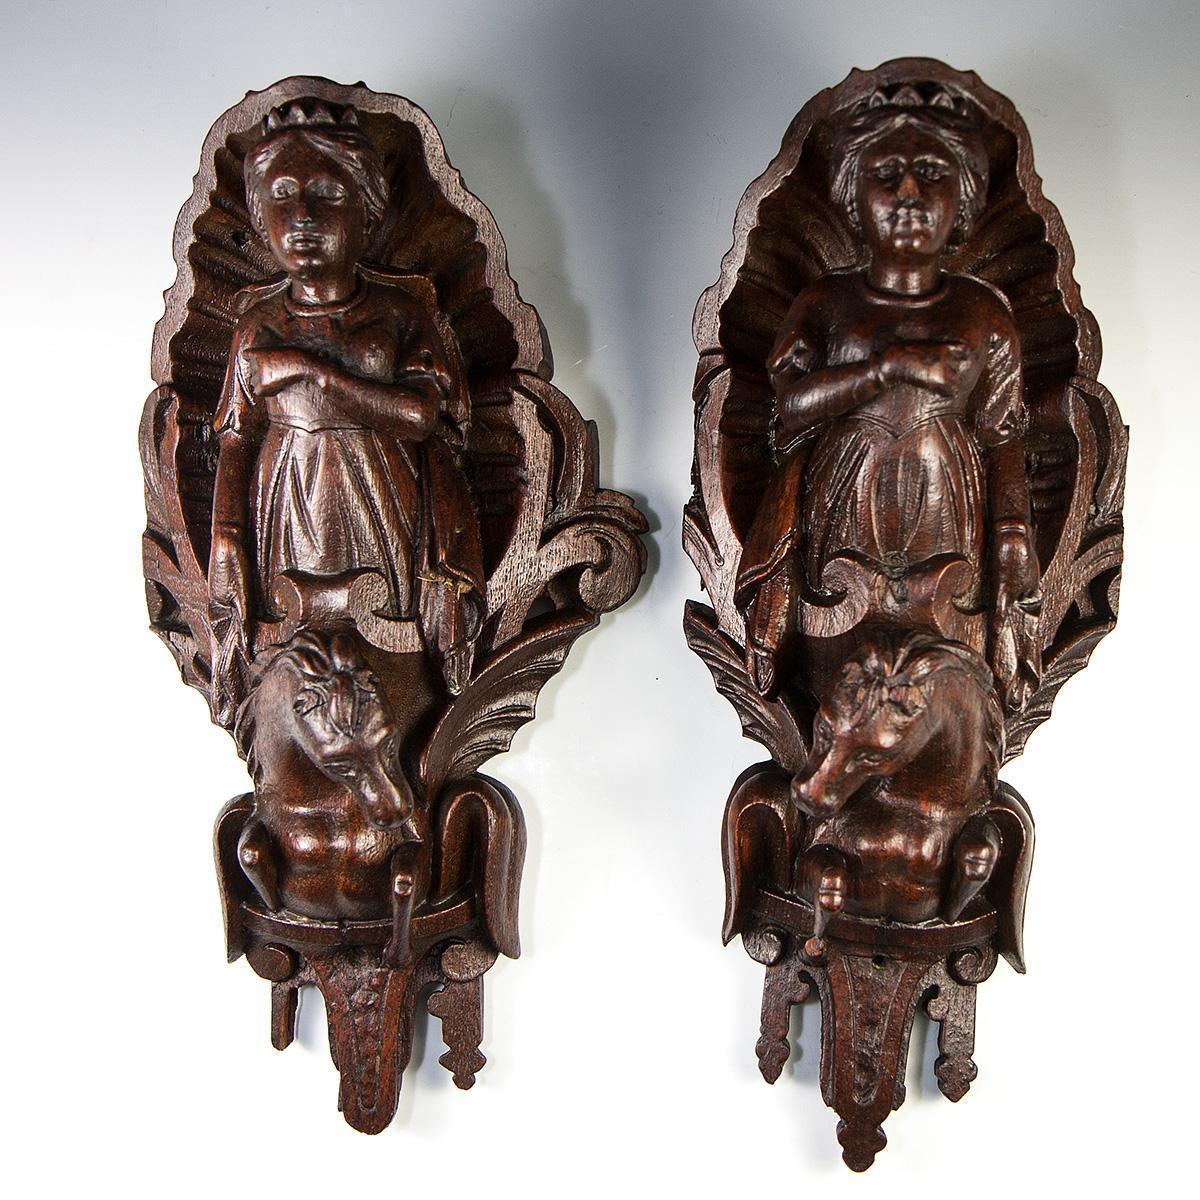 Superb RARE Hand Carved Figural Pillar or Wall Ornaments, Plaque, Queens on Horses - c.1600-1700s